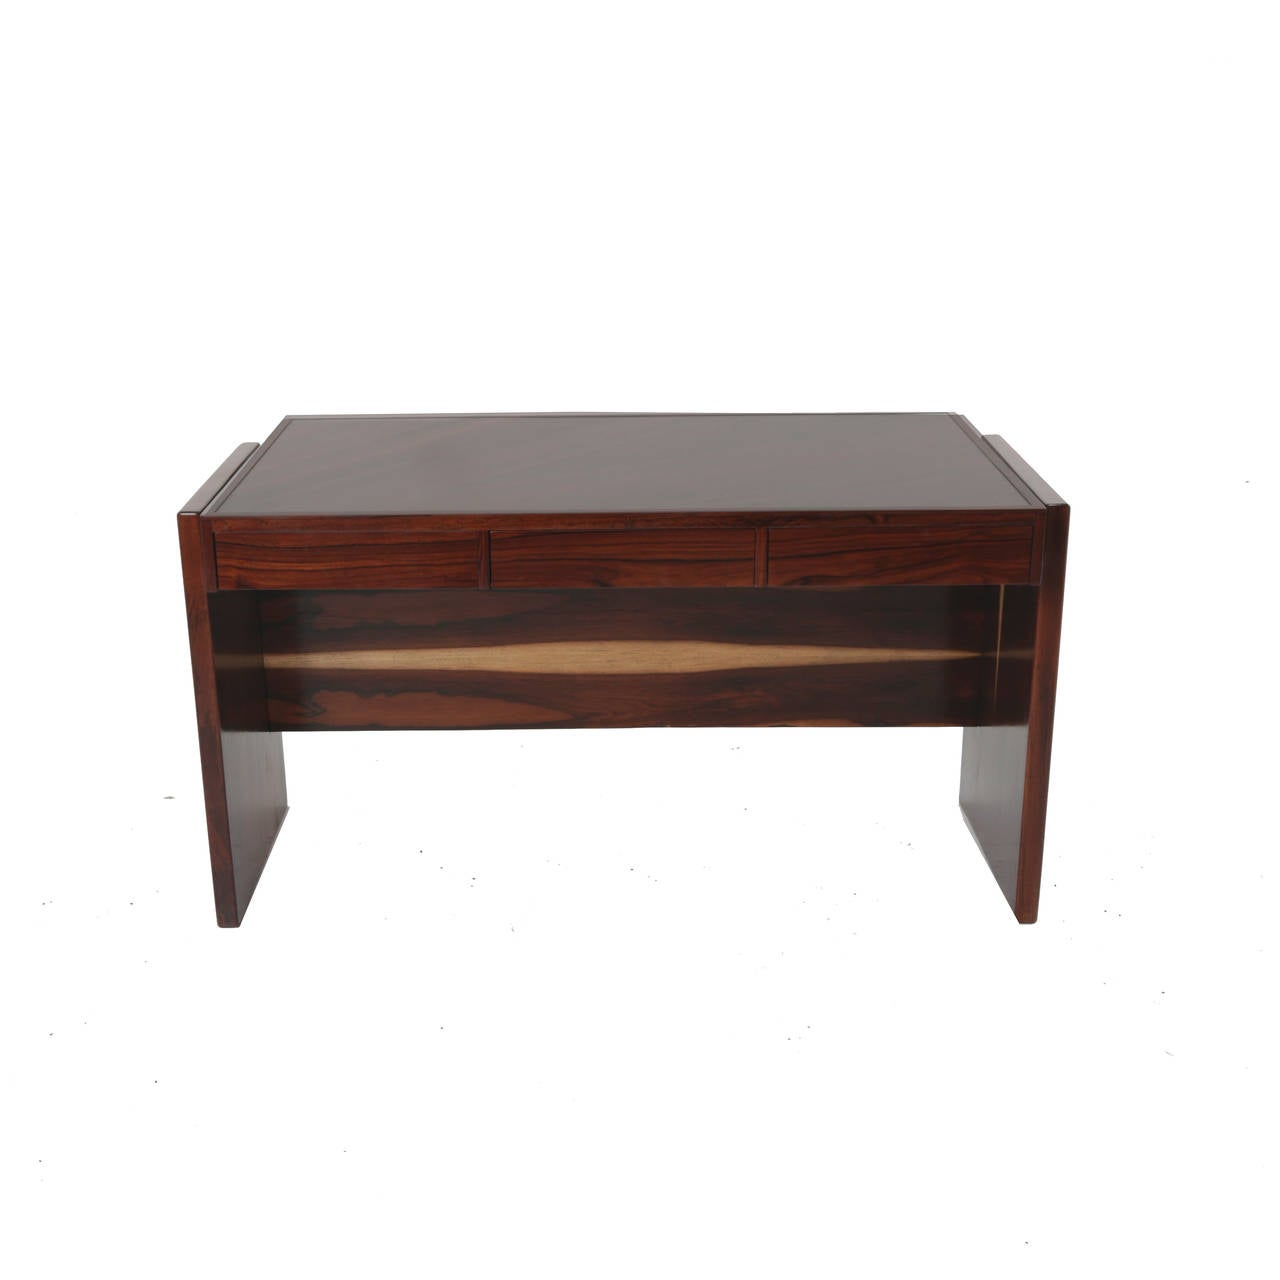 Rosewood and Glass Desk by Joaquim Tenreiro In Good Condition For Sale In Los Angeles, CA